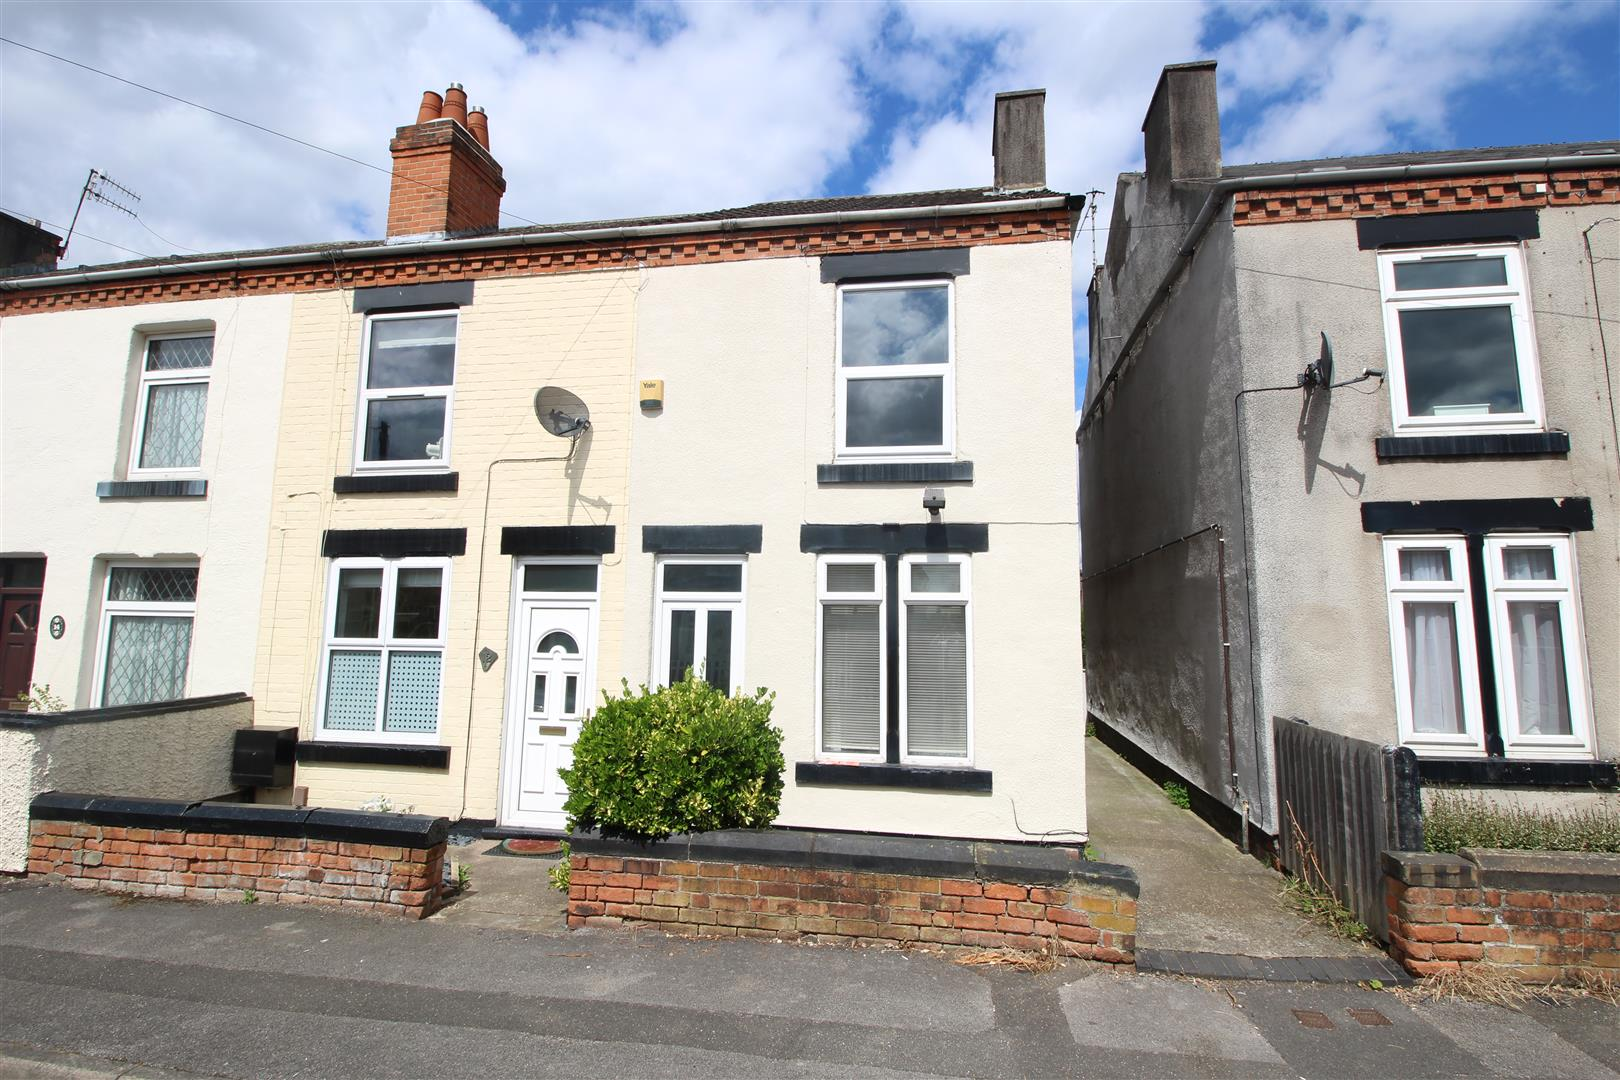 2 Bedrooms Property for sale in Harriett Street, Stapleford